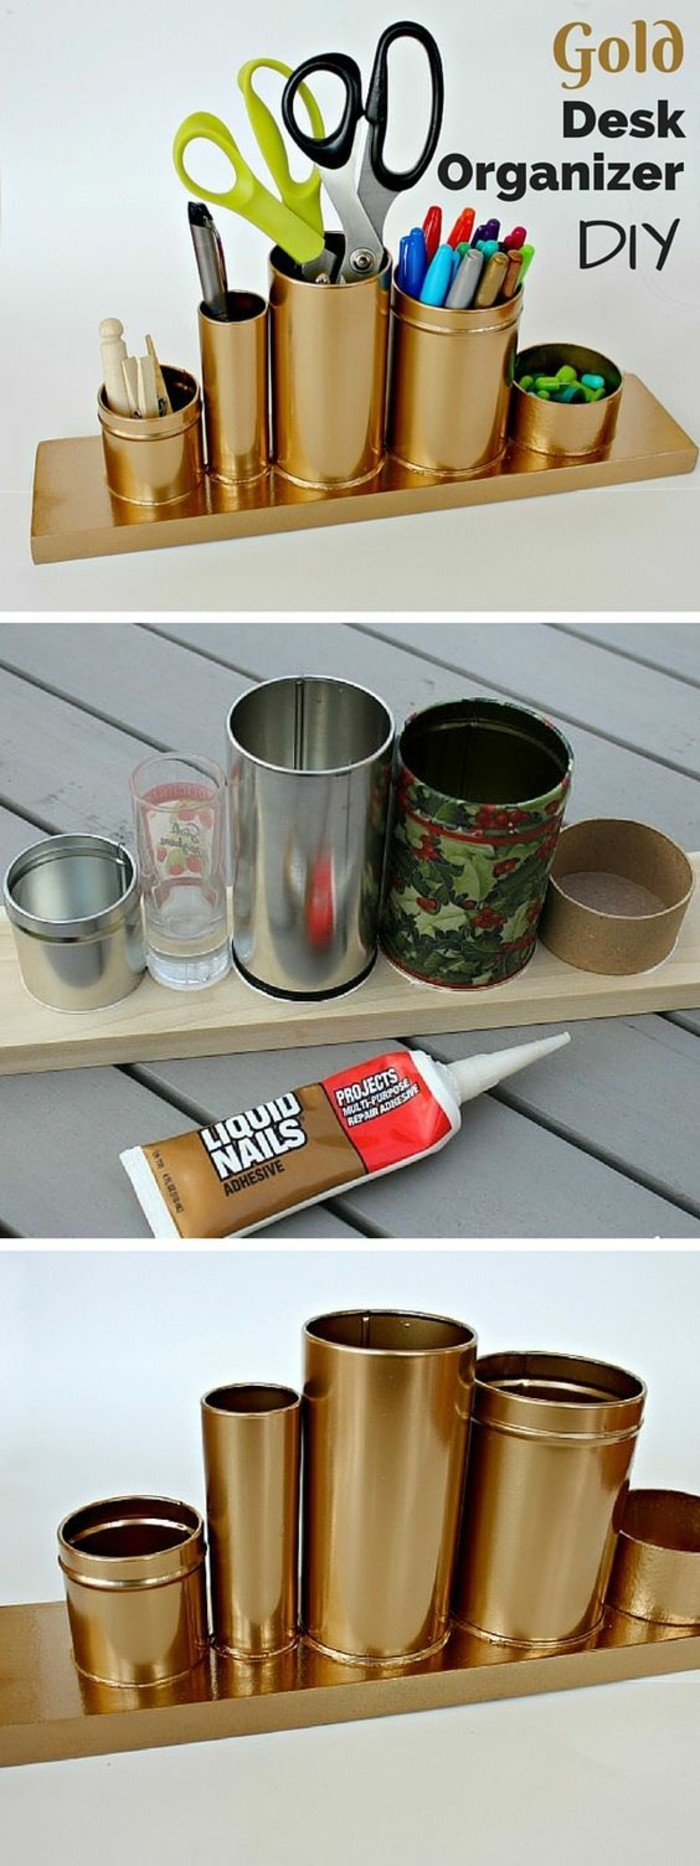 aluminum tins, desk organizer made from differently sized cans, round boxes and a glass, stuck on a wooden plank, all spray painted with copper metallic paint